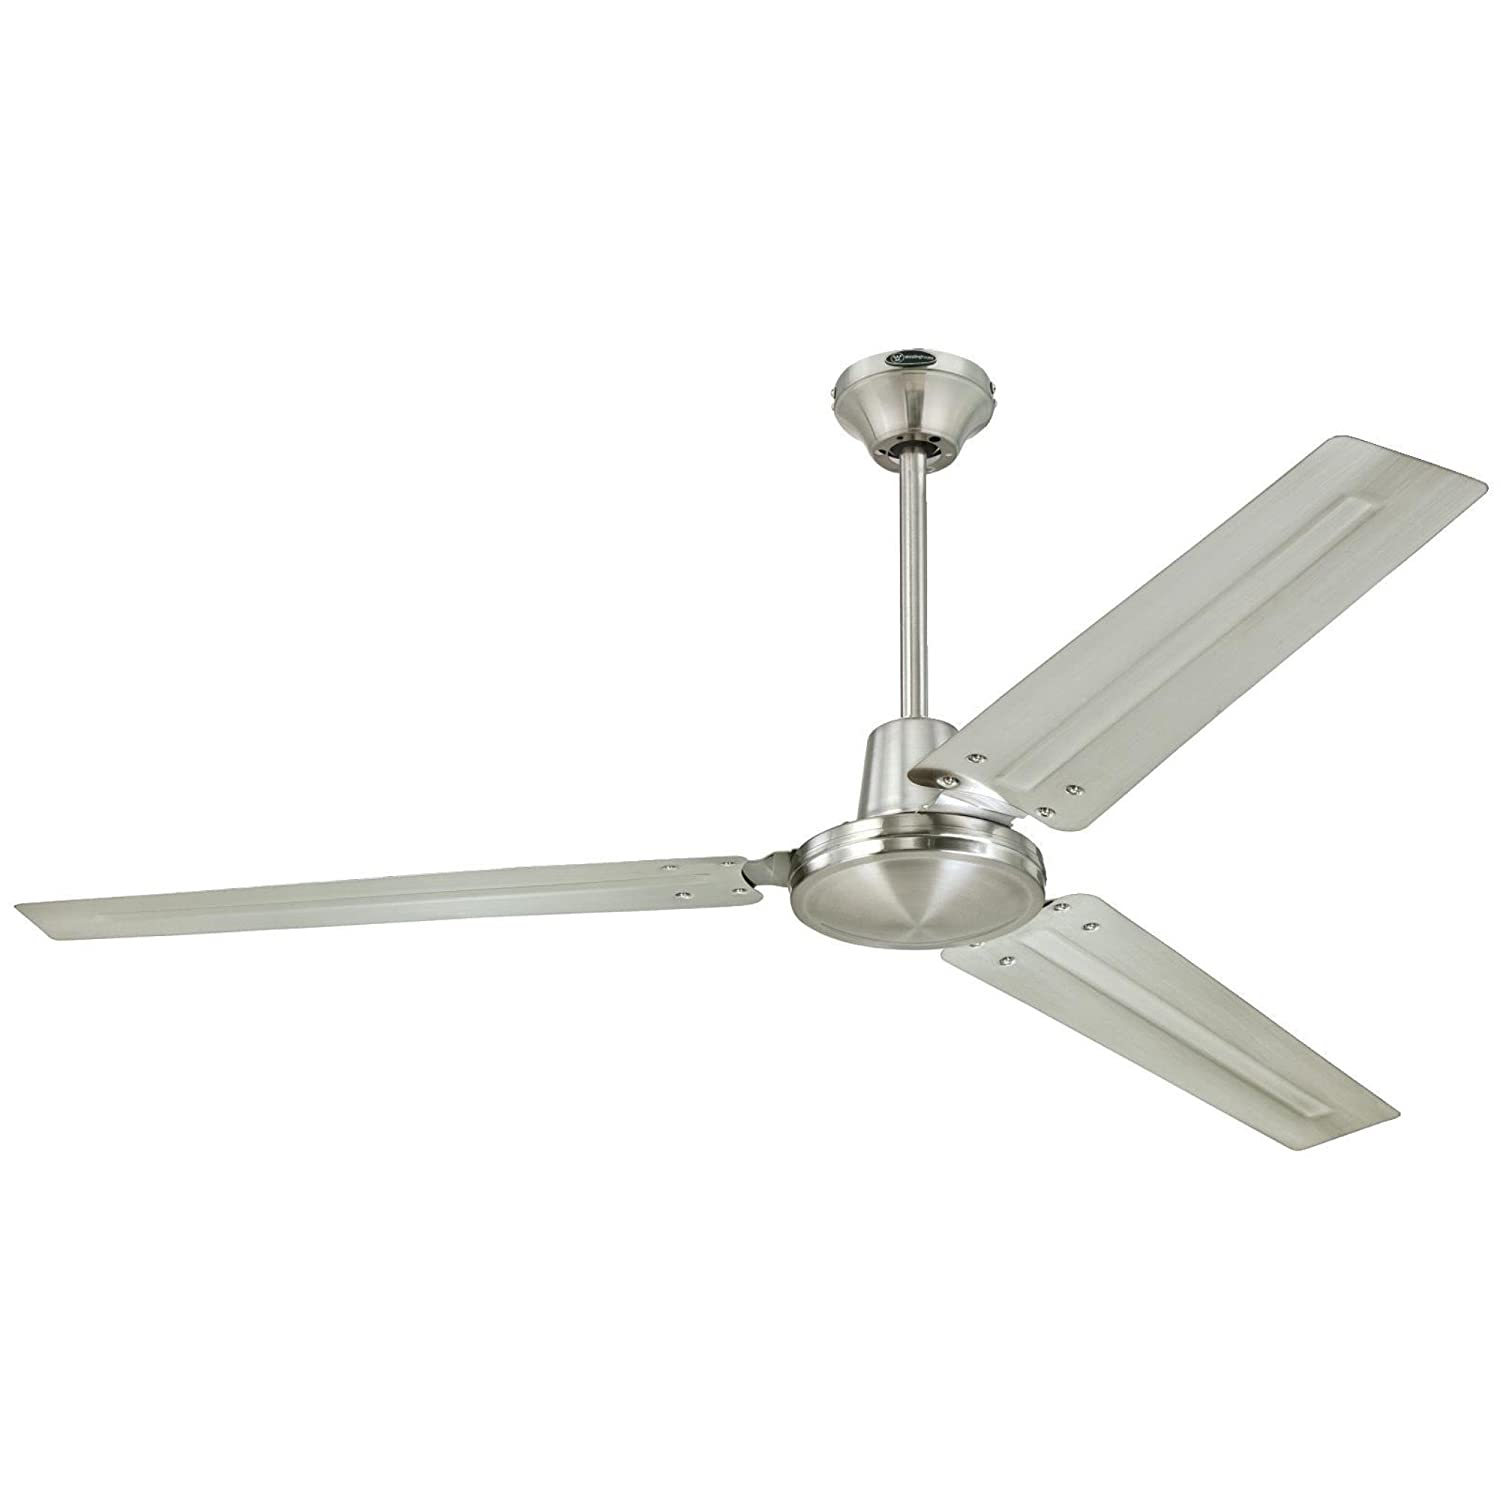 Westinghouse 7861400 Industrial 56 Inch Three Blade Indoor Ceiling Fan Brushed Nickel With